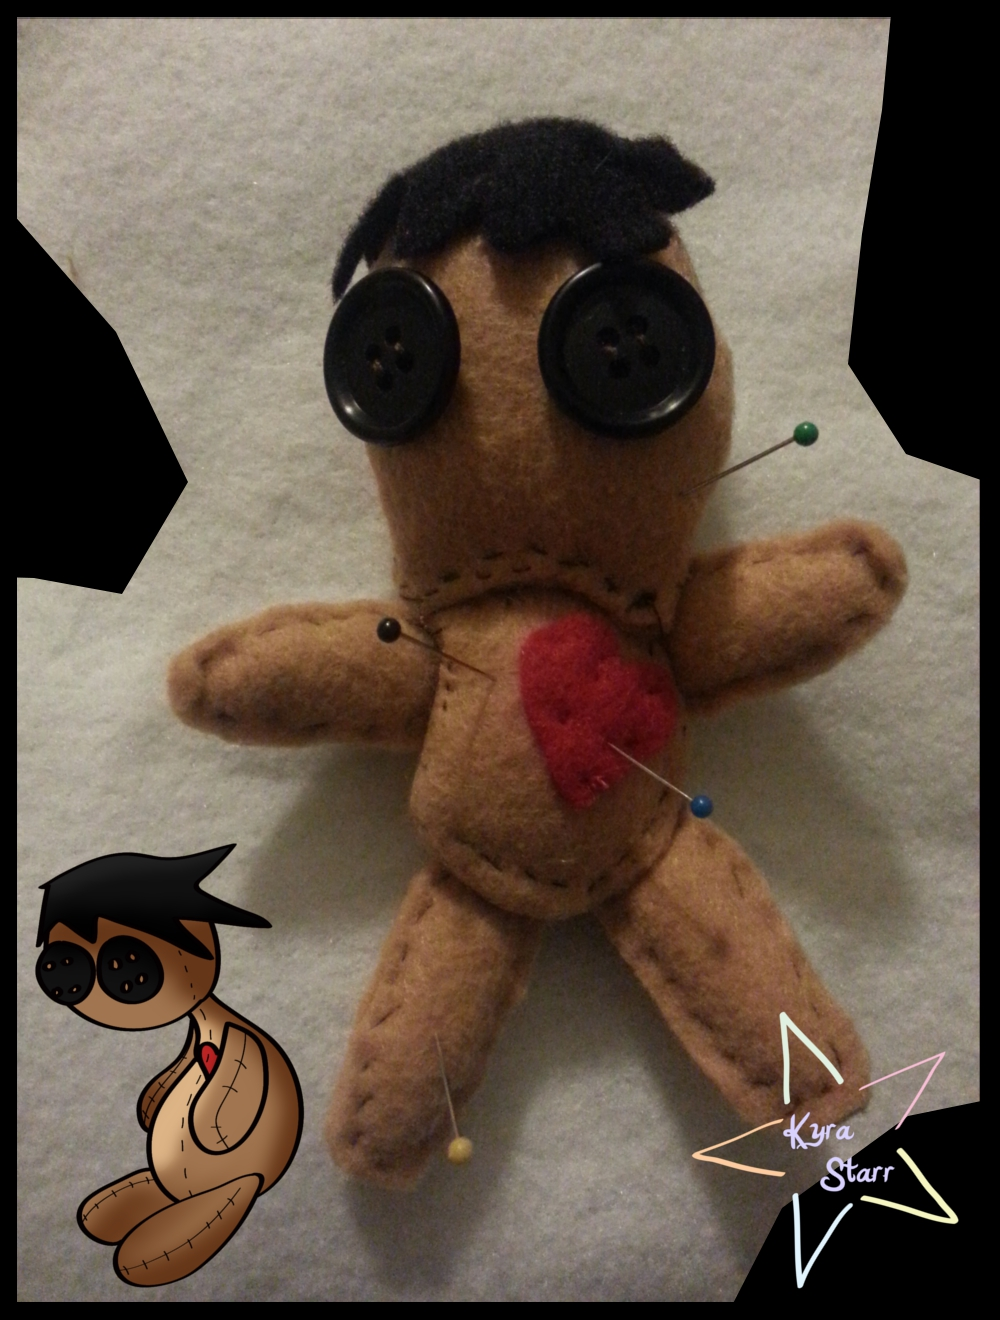 Voodoo Doll Pincushion (With Adoptable!) by KyraStarr